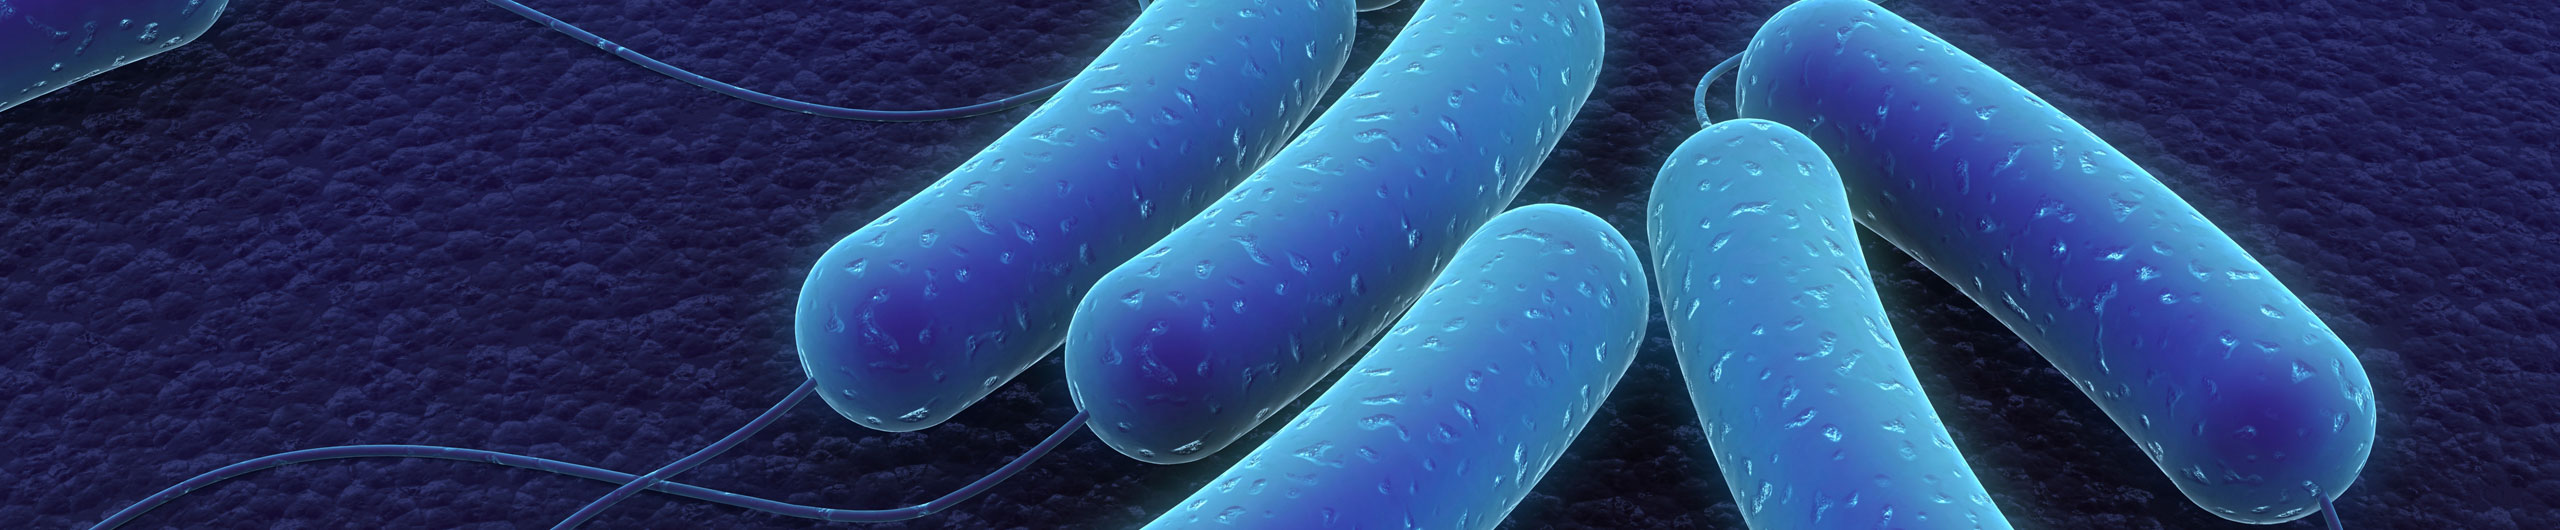 Legionella bugs under the microscope